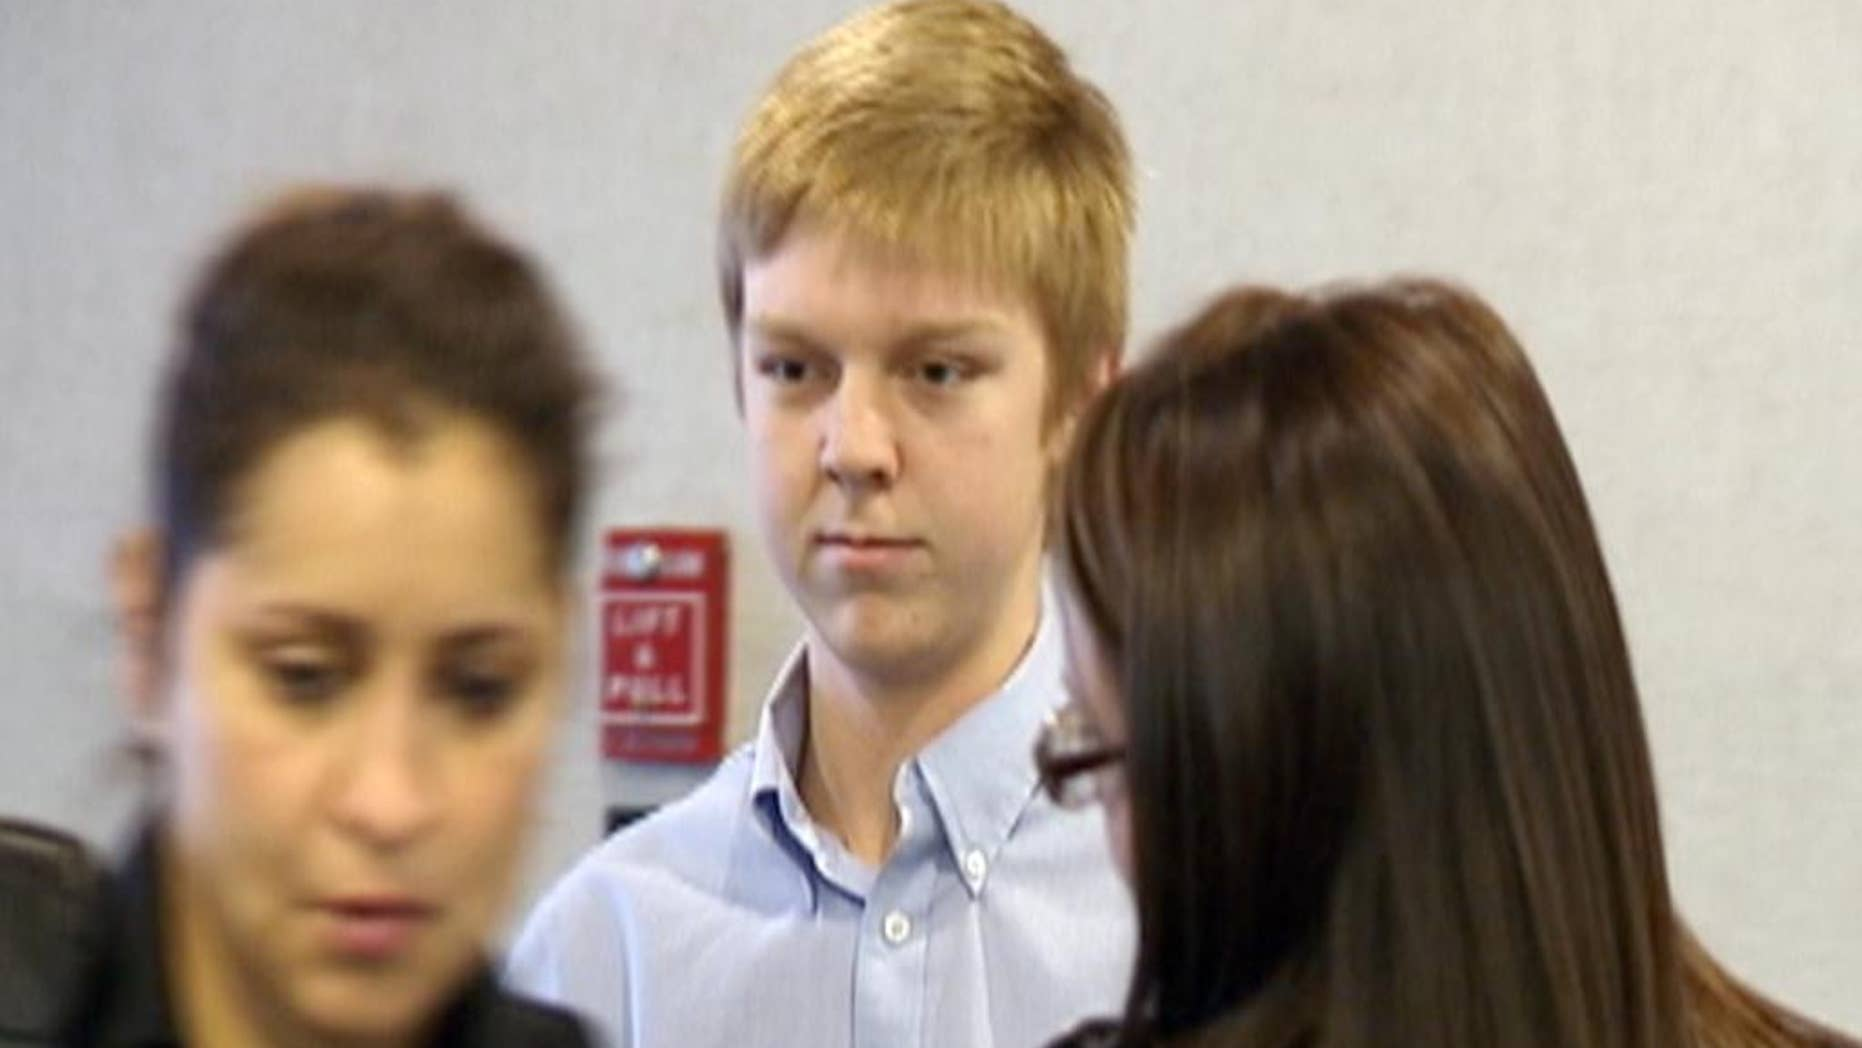 FILE - This Dec. 2013 file image taken from a video by KDFW-FOX 4, Ethan Couch, who killed four people in a drunken wreck in 2013, appears for his court hearing in Fort Worth, Texas. Couch's family has settled with some, but not all, of the victims suing them. Court records indicate the family has settled three lawsuits brought against them, including suits involving three of the four people who died. But at least four other lawsuits have not been settled.  (AP Photo/KDFW-FOX 4, File)